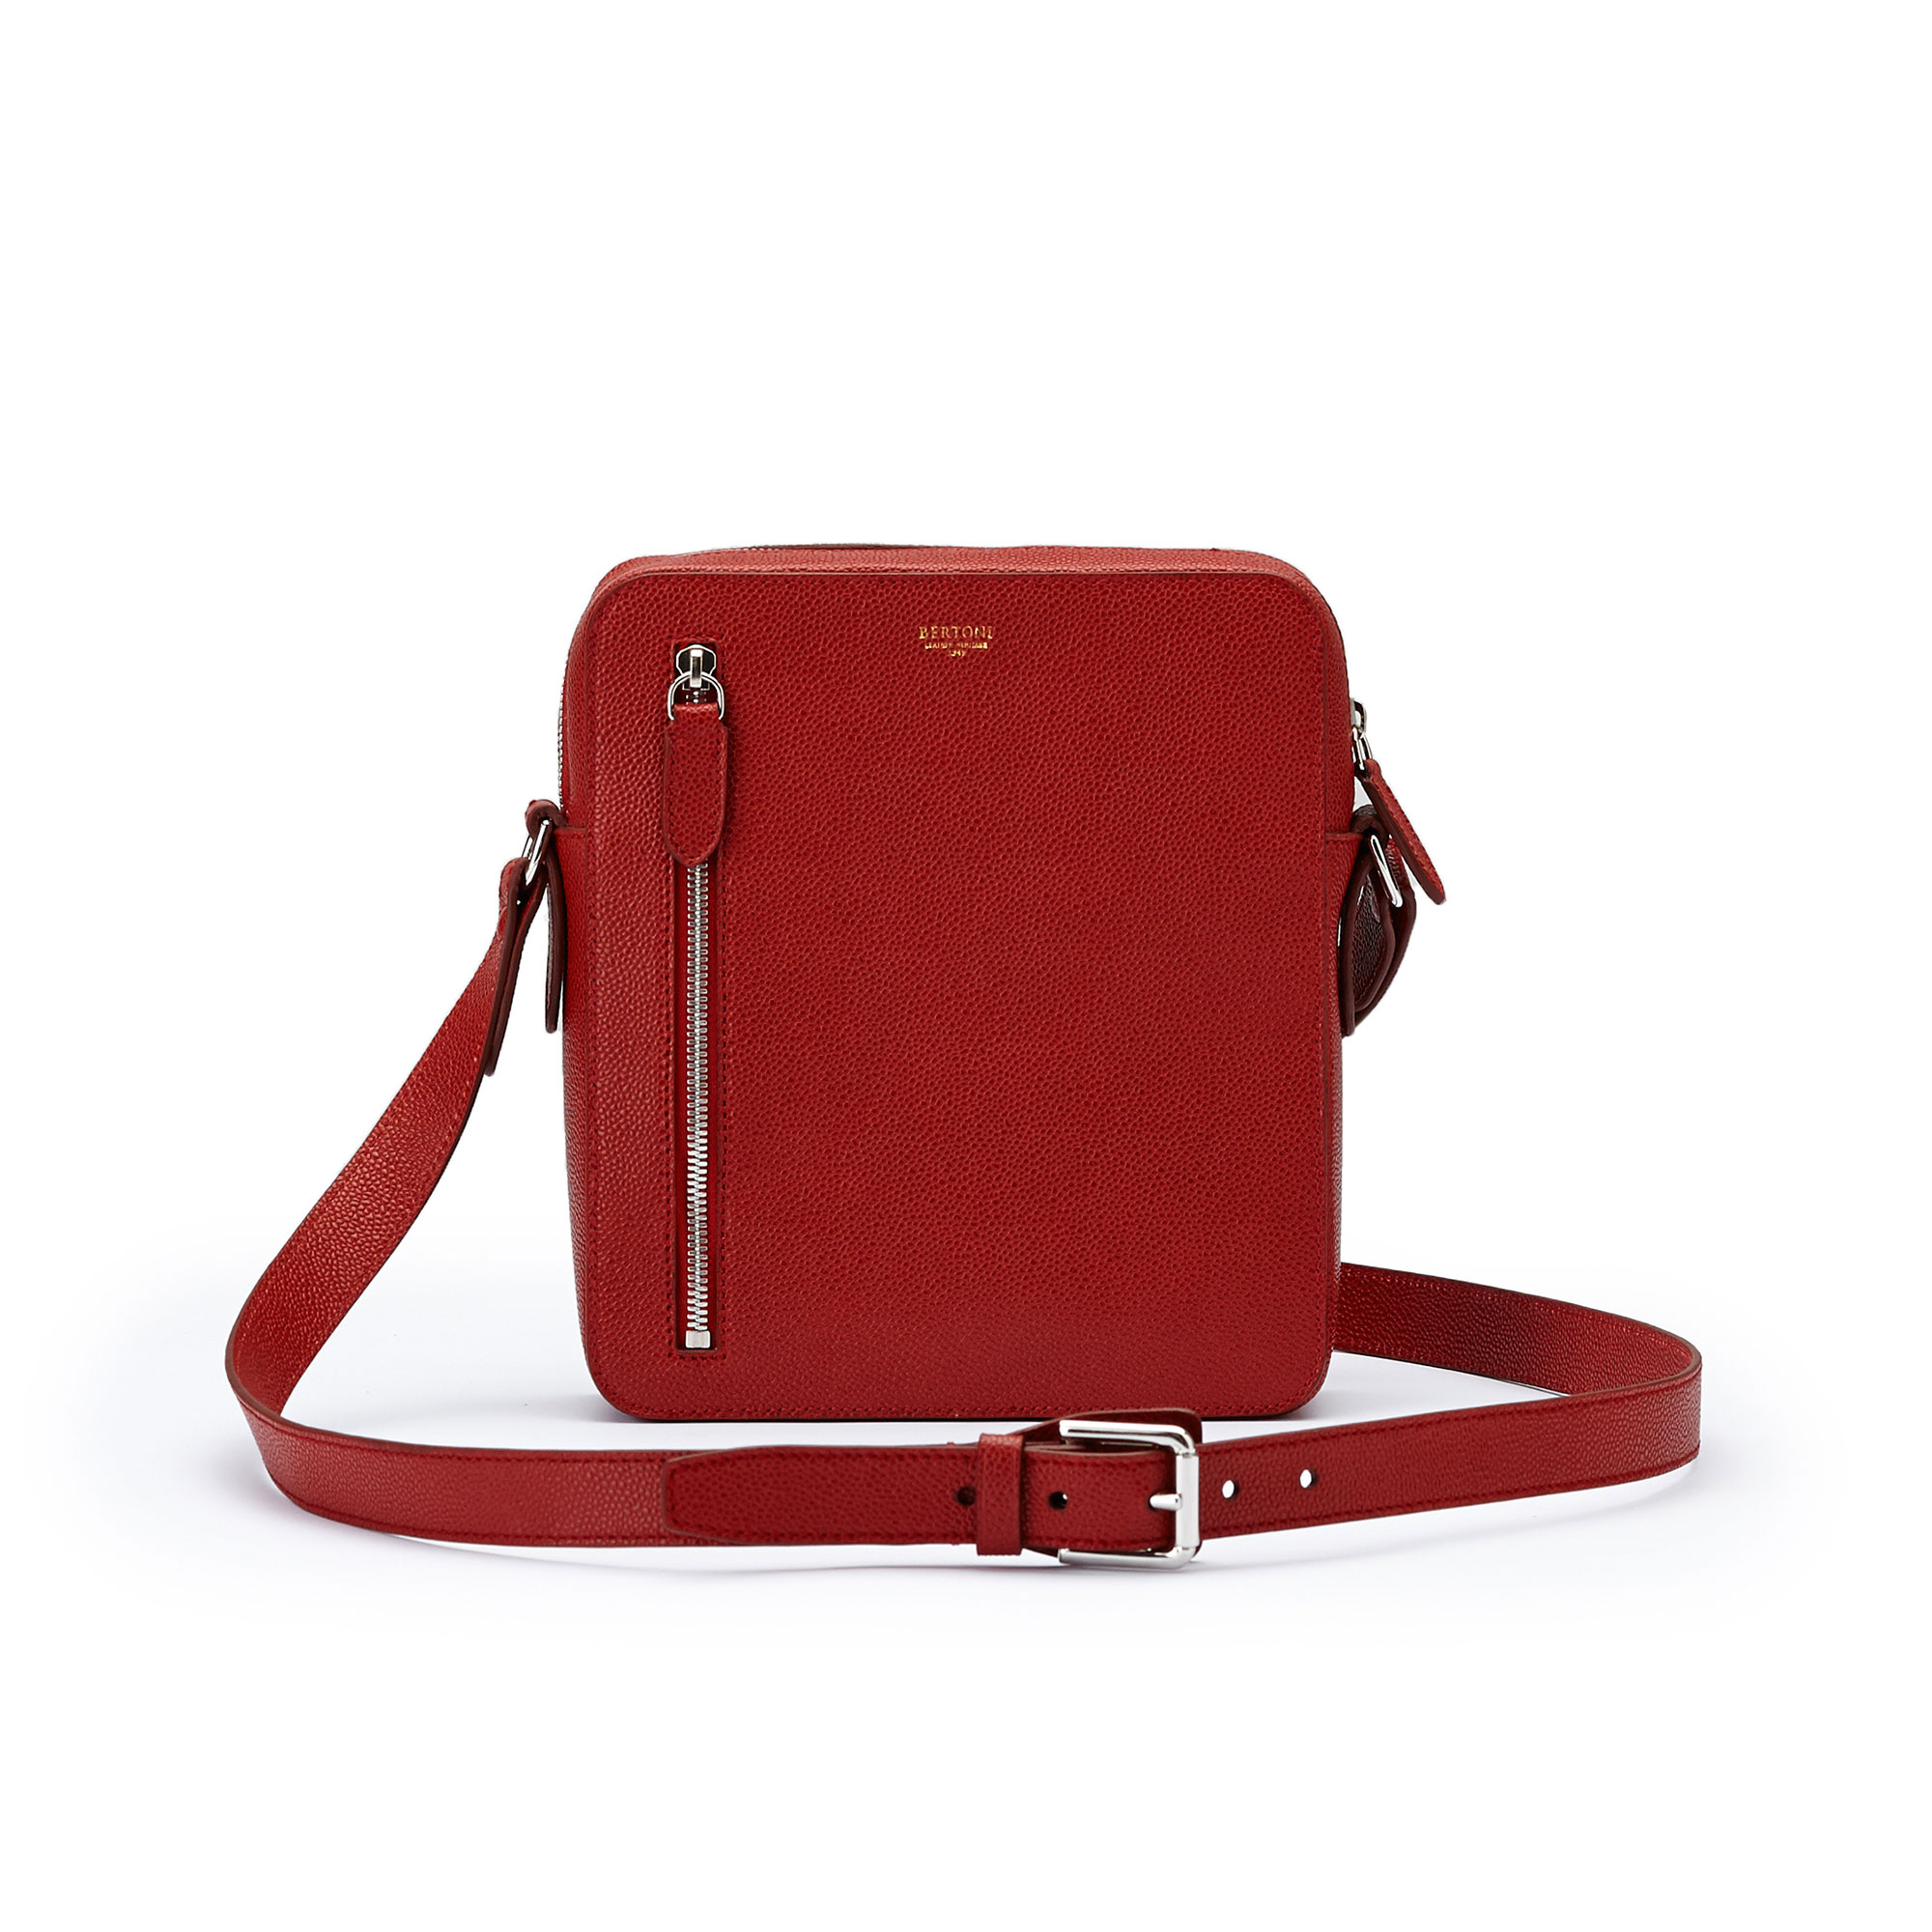 The red grain calf Man Bag by Bertoni 1949 01